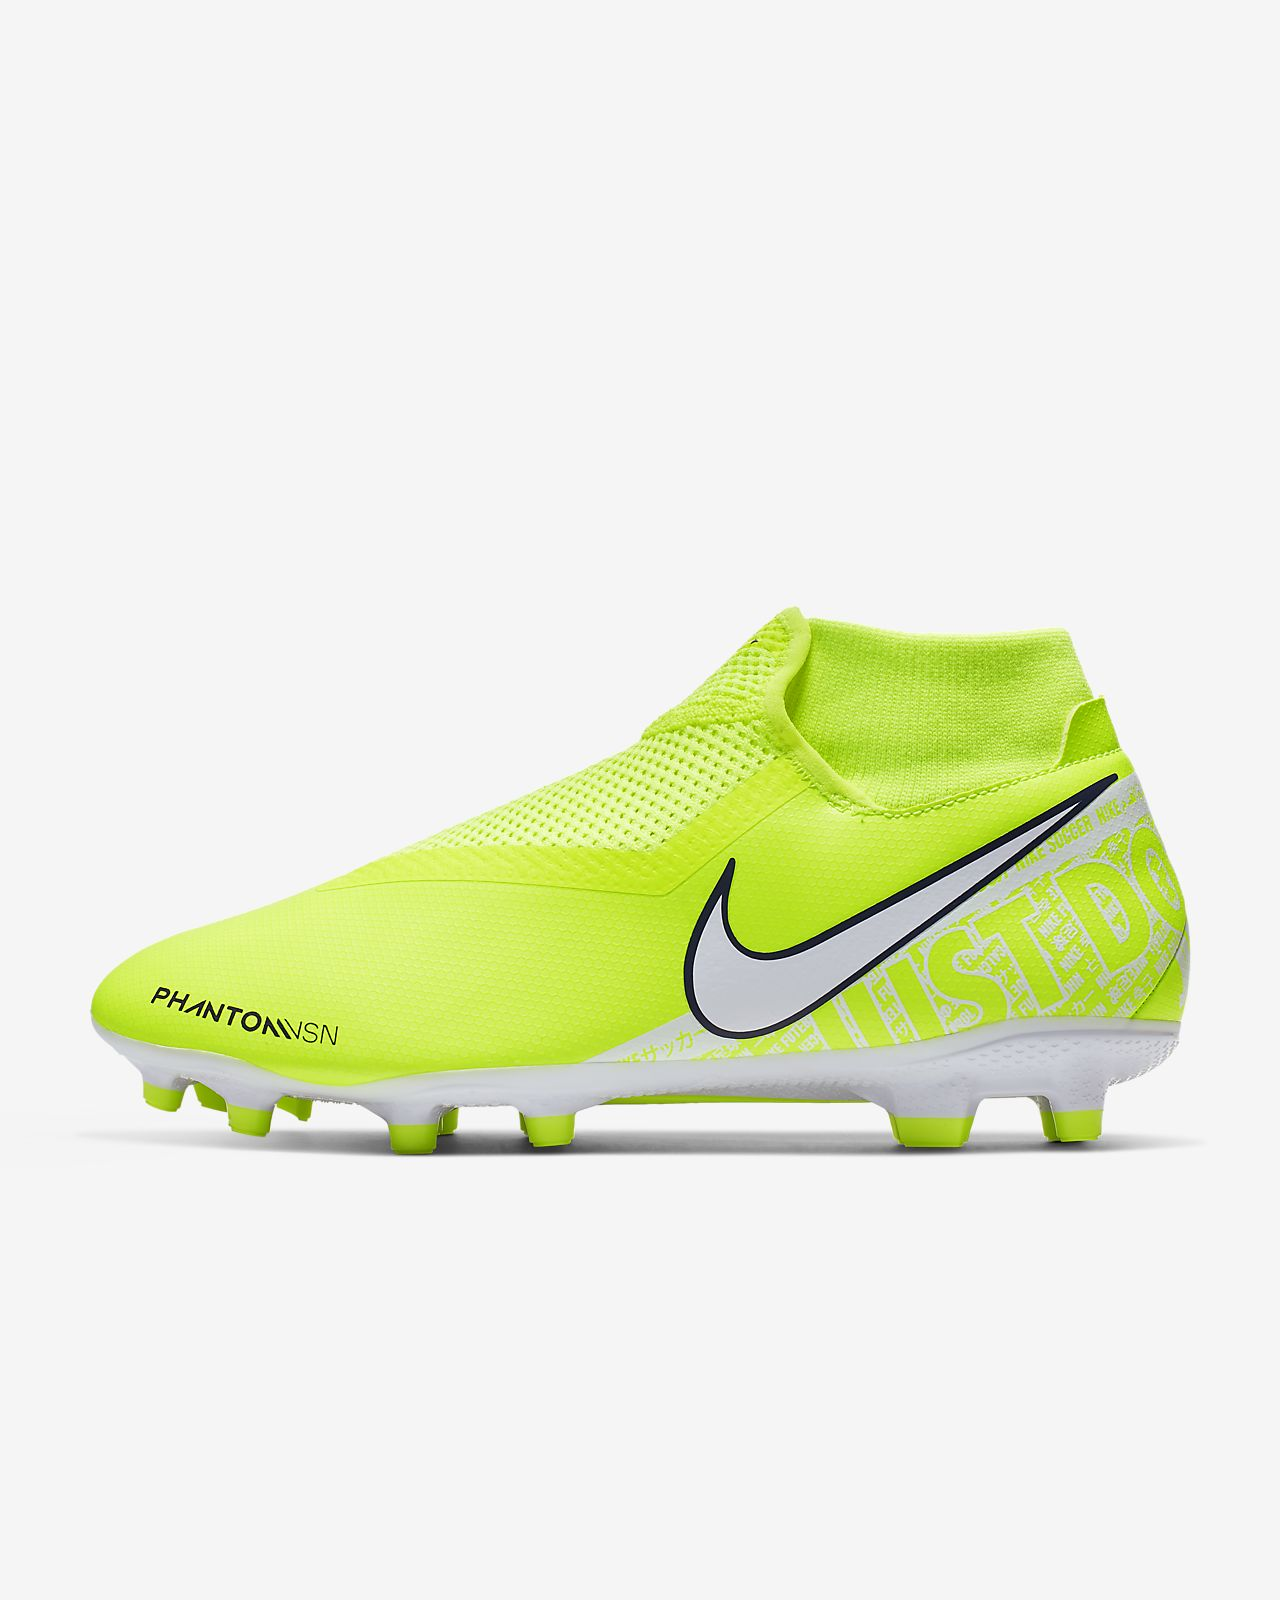 Nike Phantom Vision Academy Dynamic Fit MG Multi,Ground Soccer Cleat